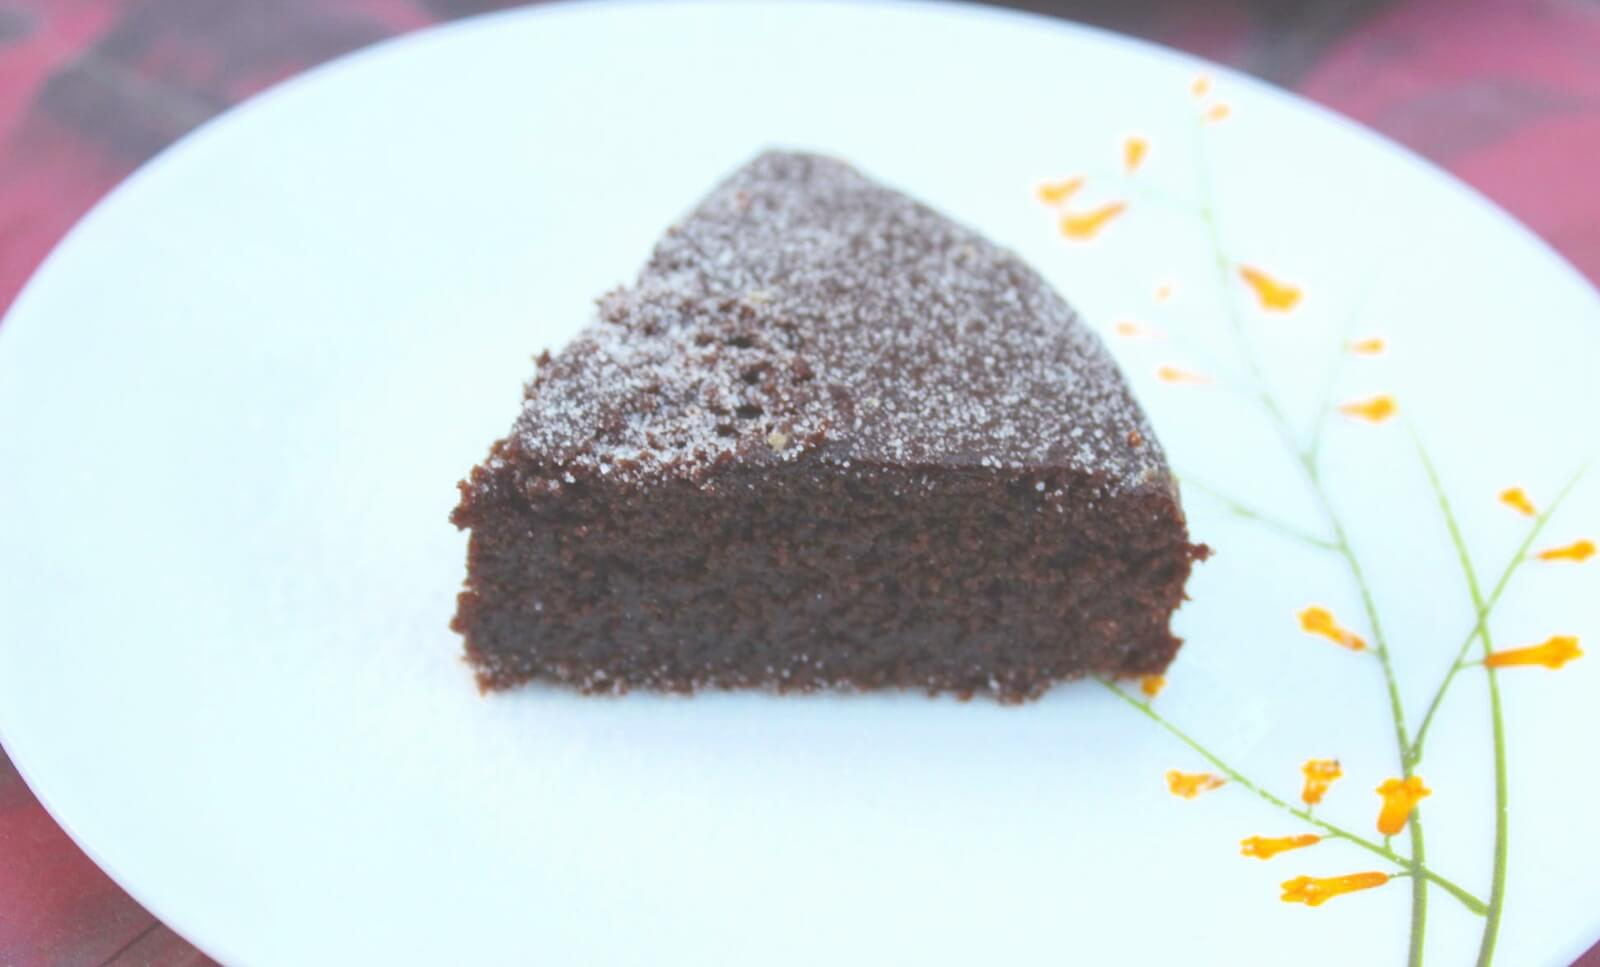 Whole Wheat Chocolate Cake / Eggless Atta Chocolate Cake - Now eat chocolate cake without worrying about unhealthy ingredients. A healthy version of the most loved cake!